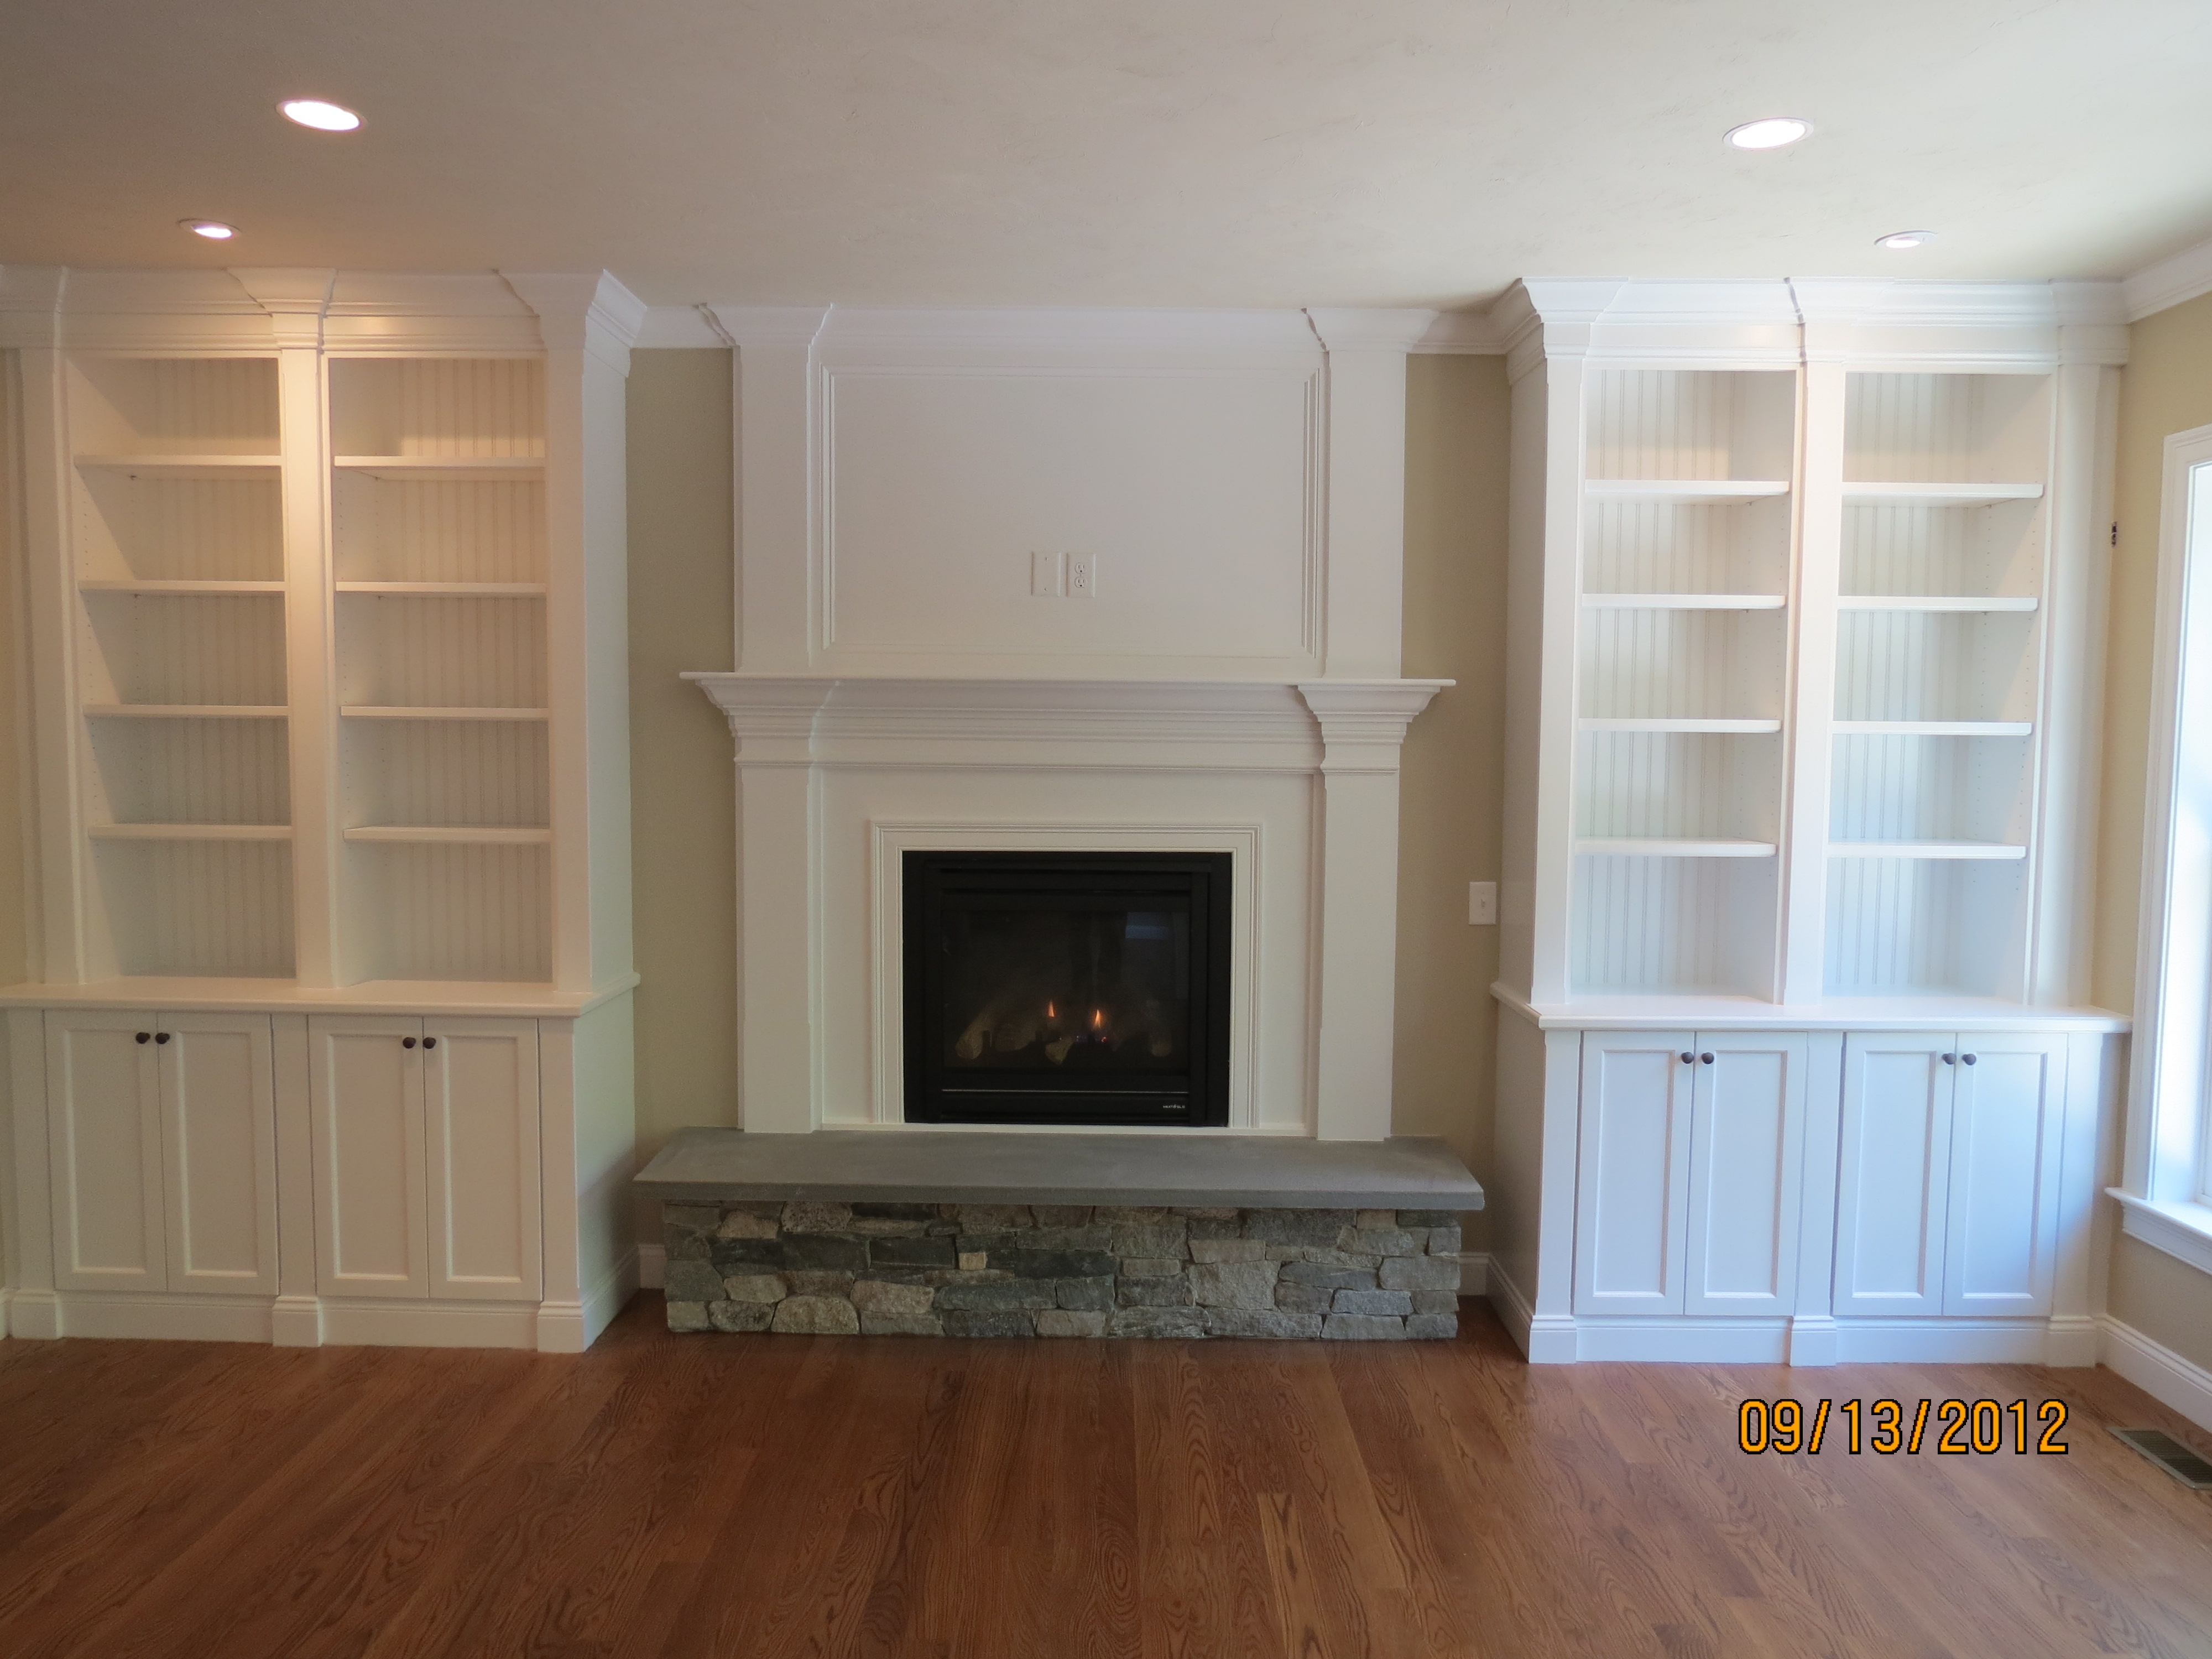 Sample photo from Photo Gallery, built-ins